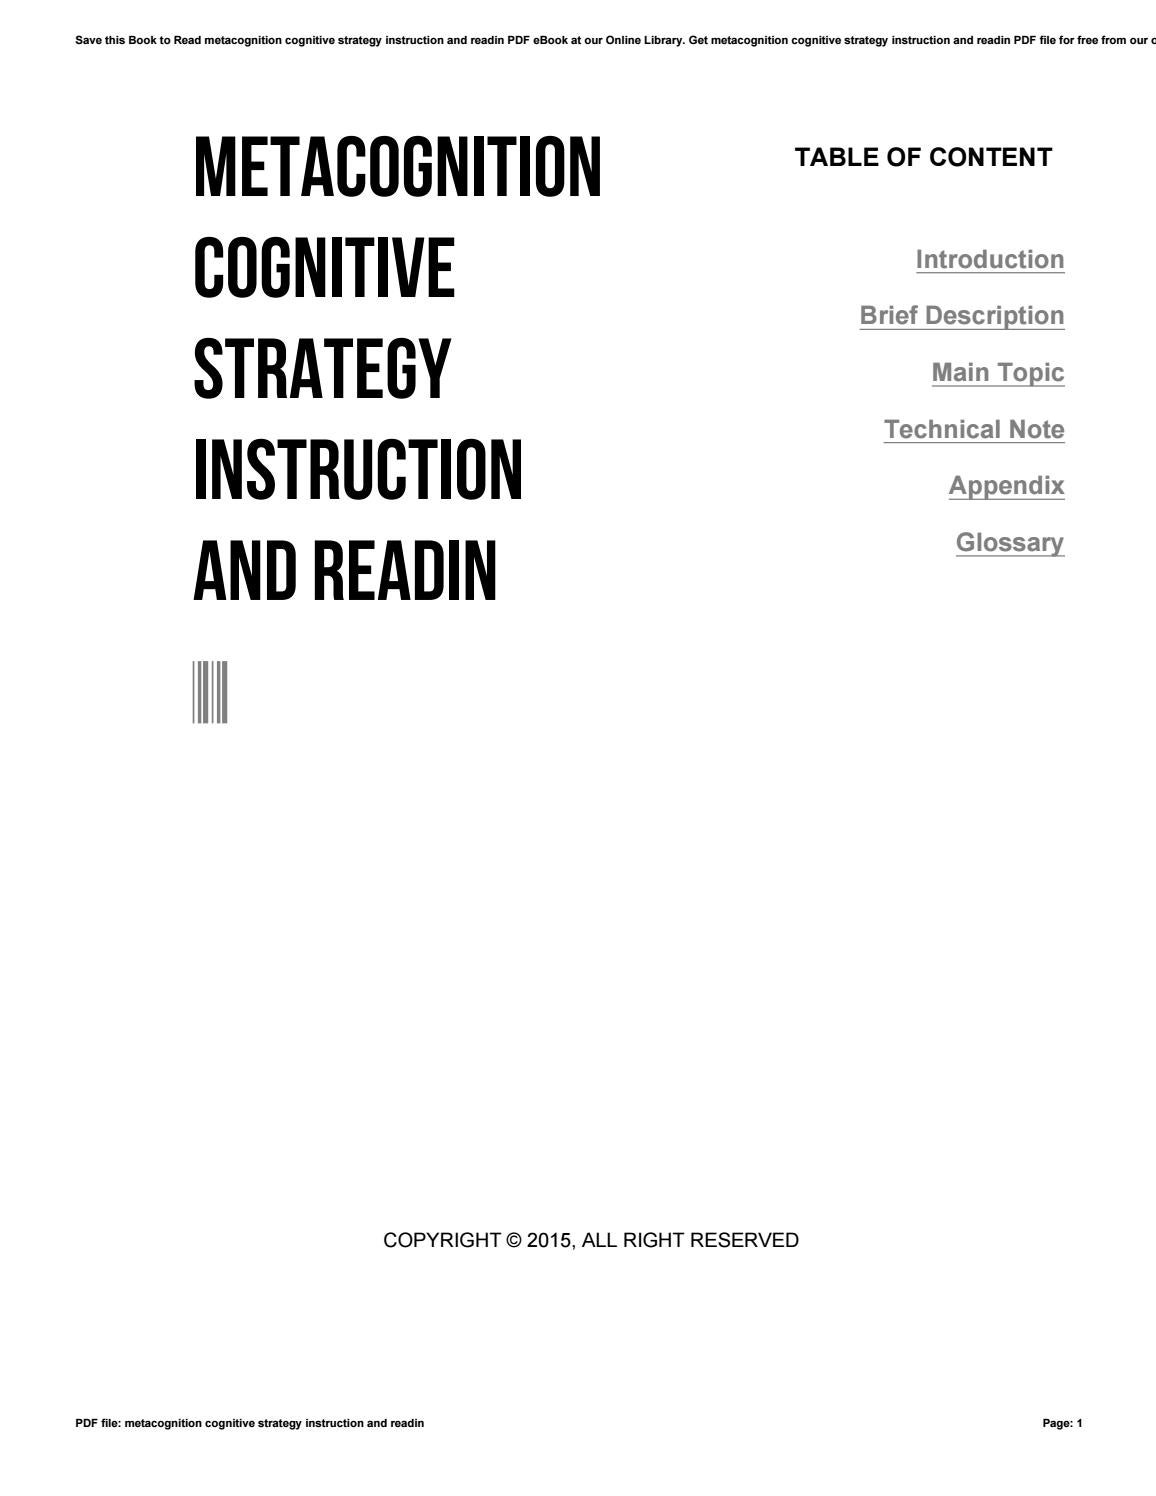 Metacognition Cognitive Strategy Instruction And Readin By C9552 Issuu